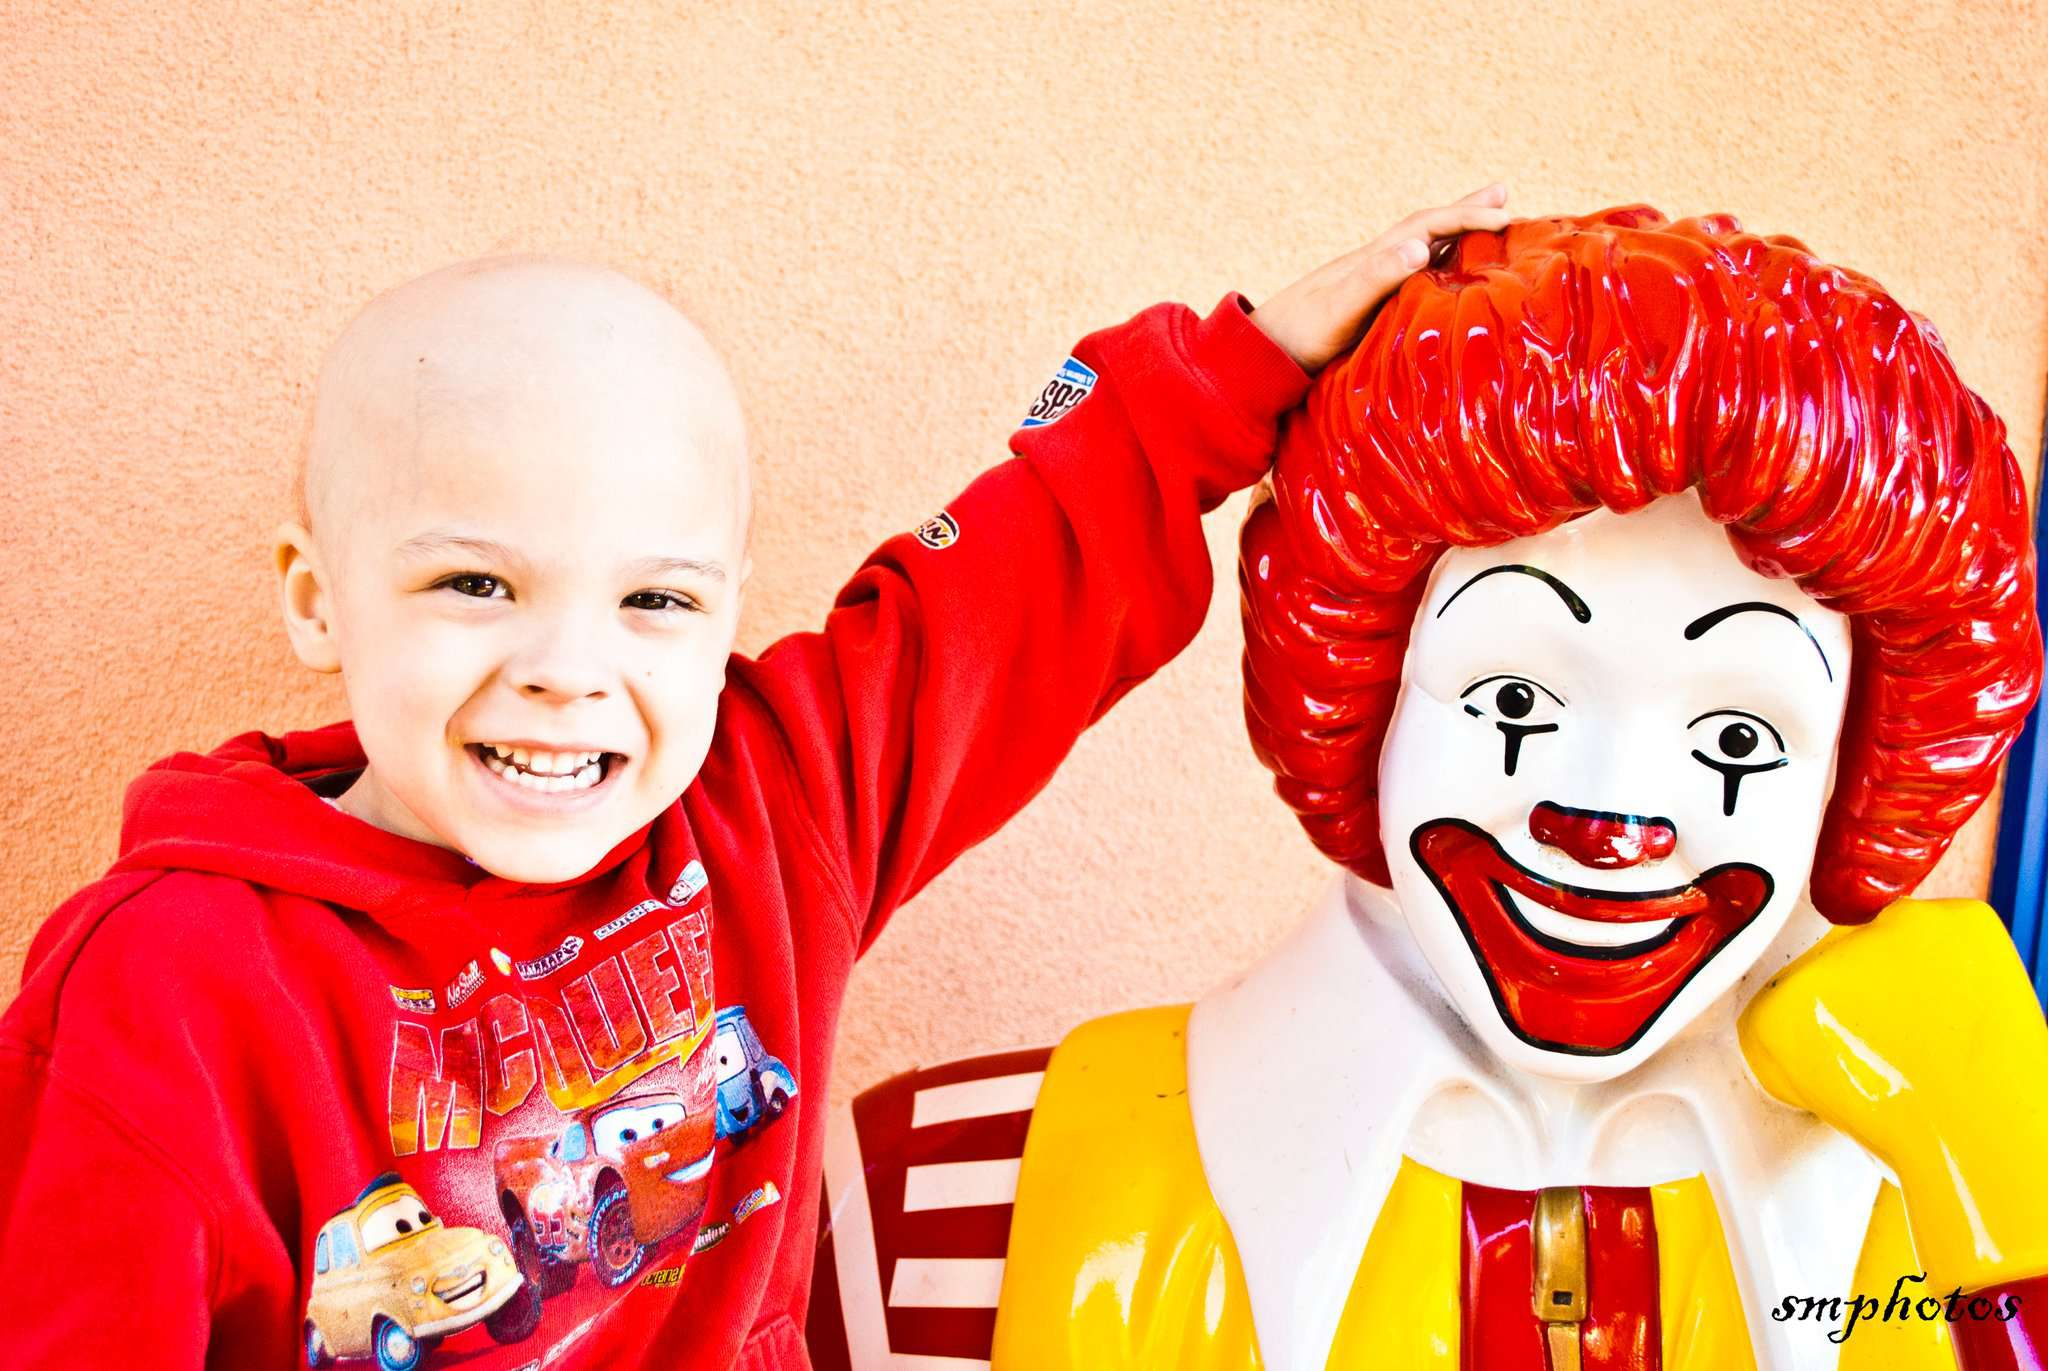 Young chemo patient posing with Ronald McDonald